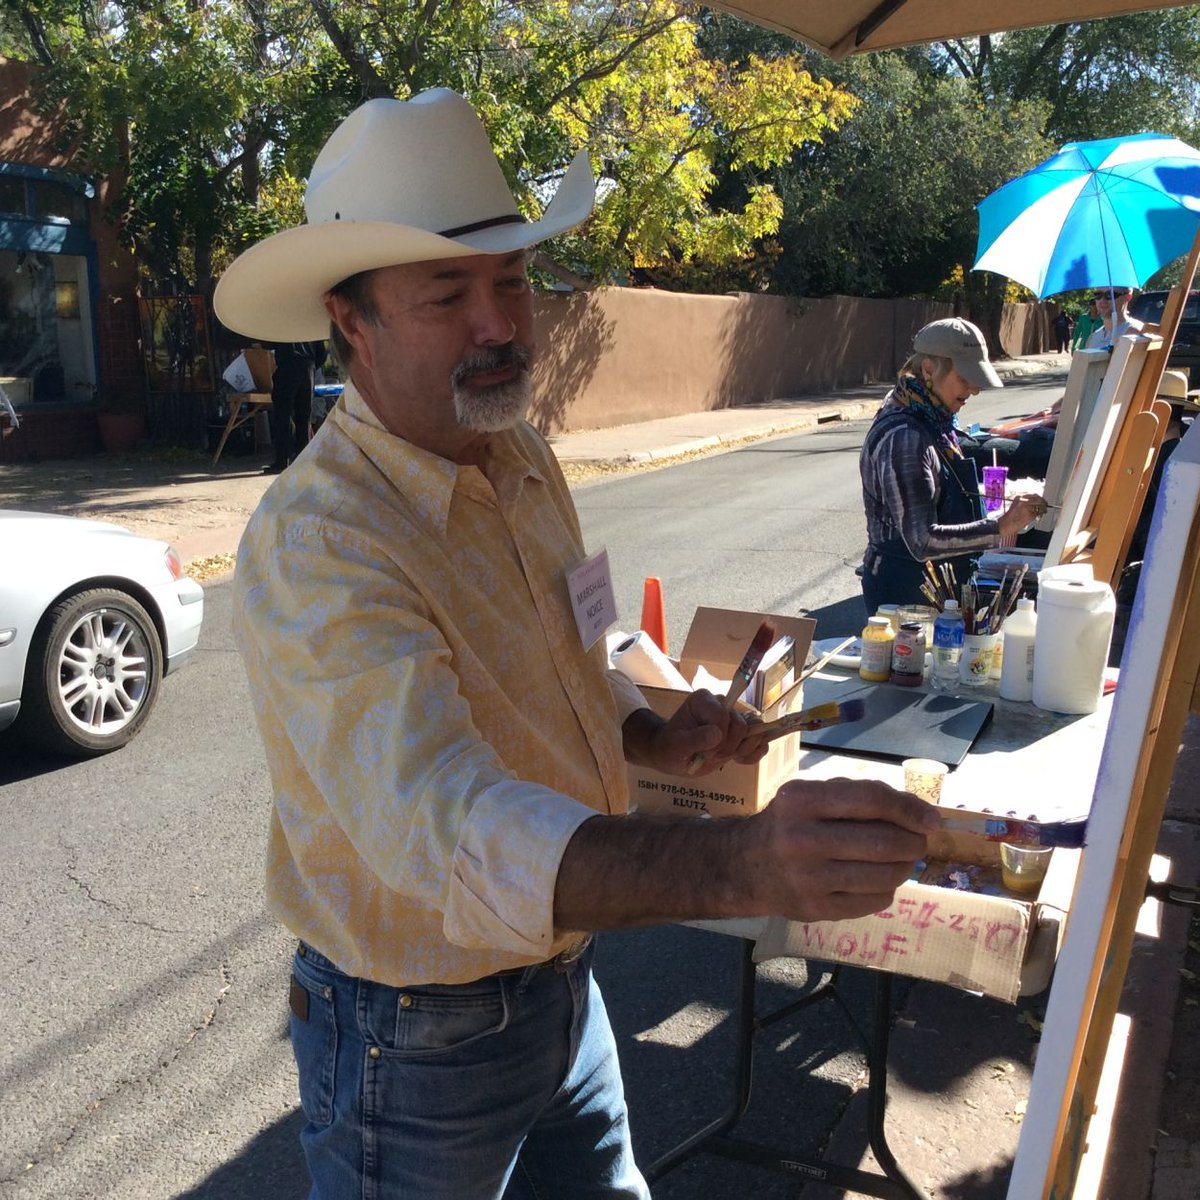 Enjoy a day filled with fine art! Join us today from 10 - 4 for the Canyon Road Paint Out and Sculpt Out. https://t.co/OZnsMC3ZES